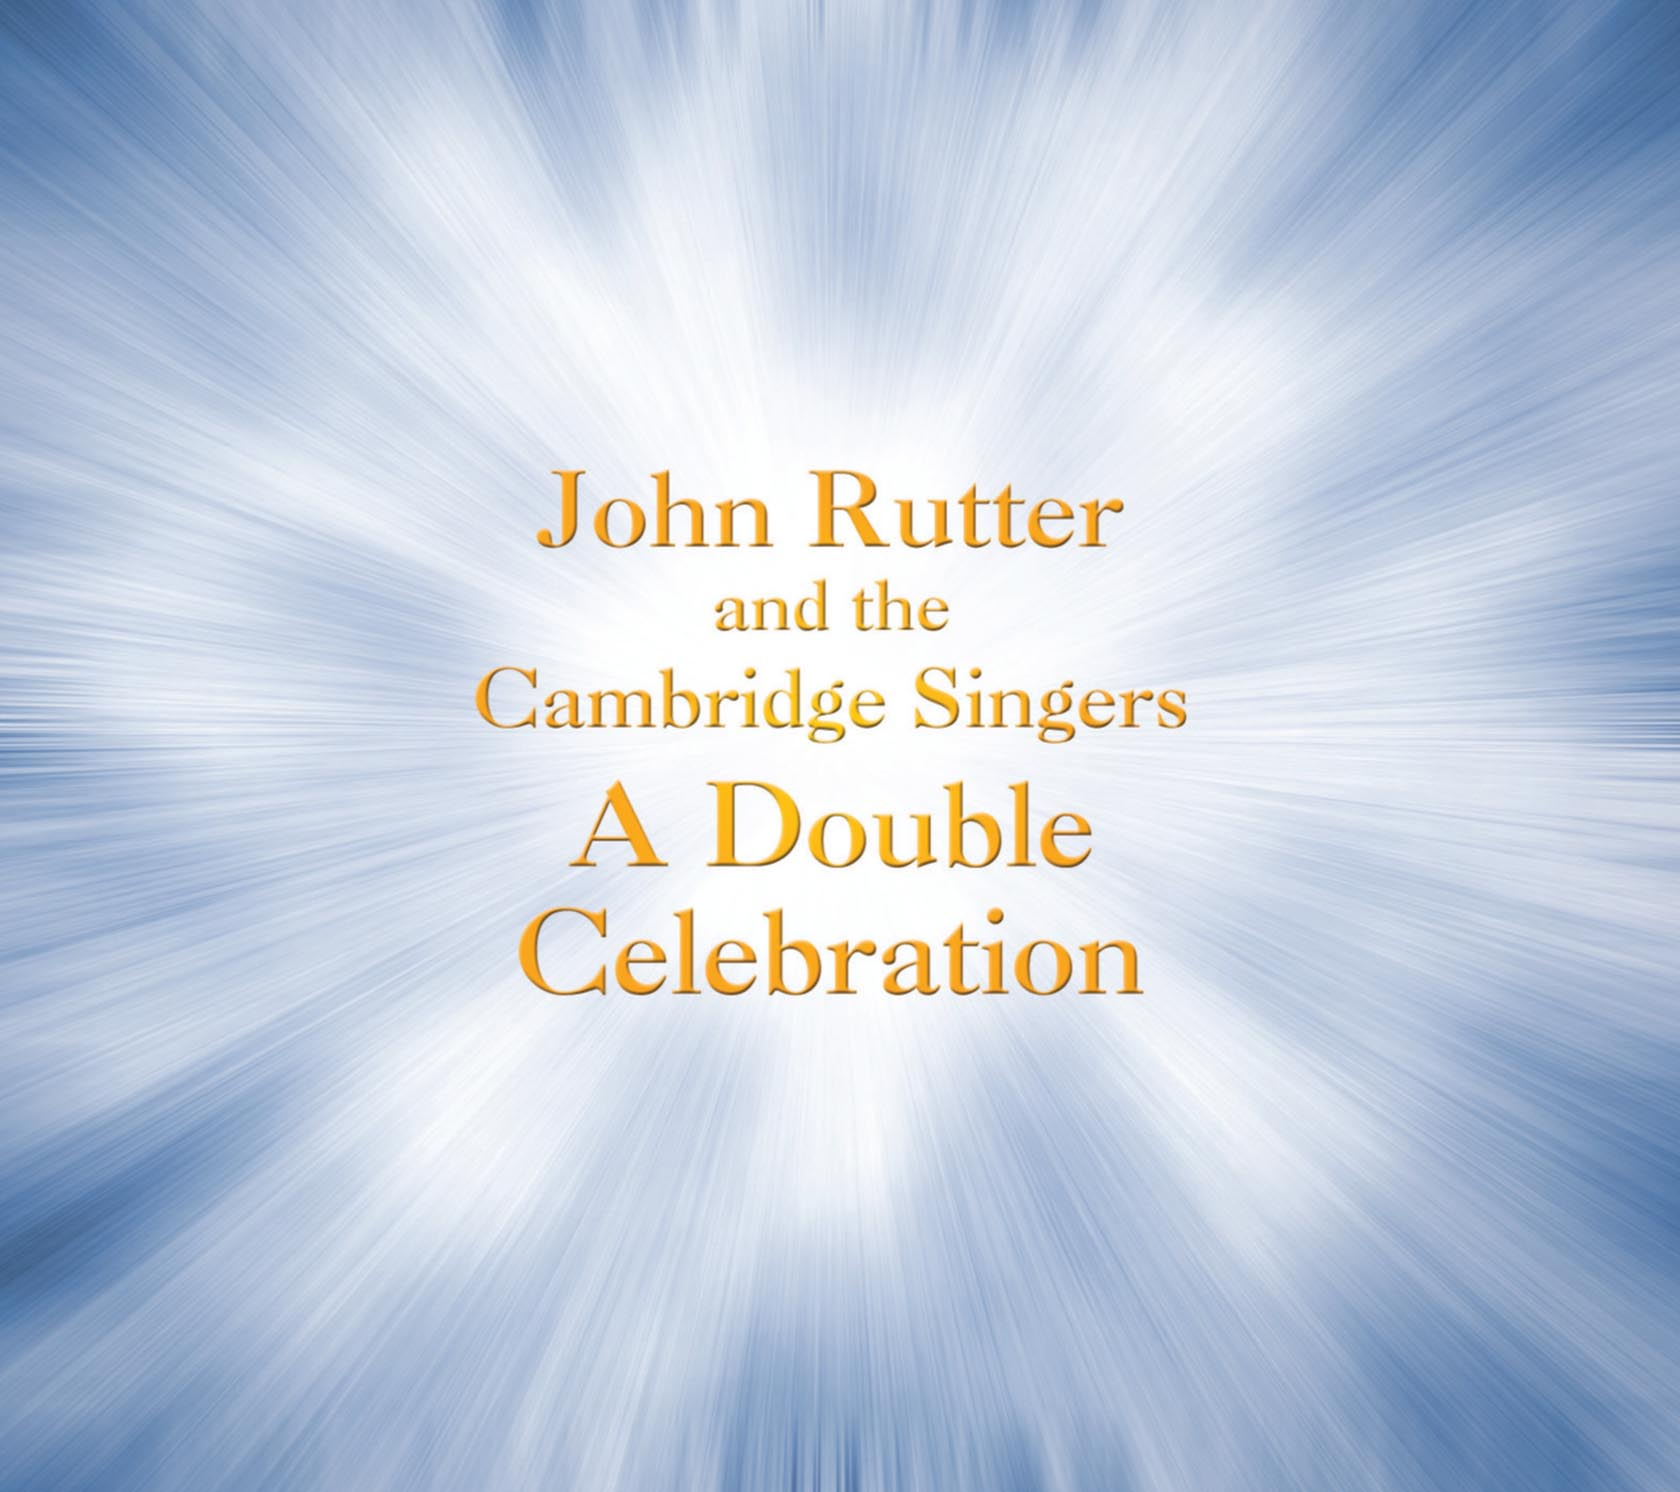 A Double Celebration CD released